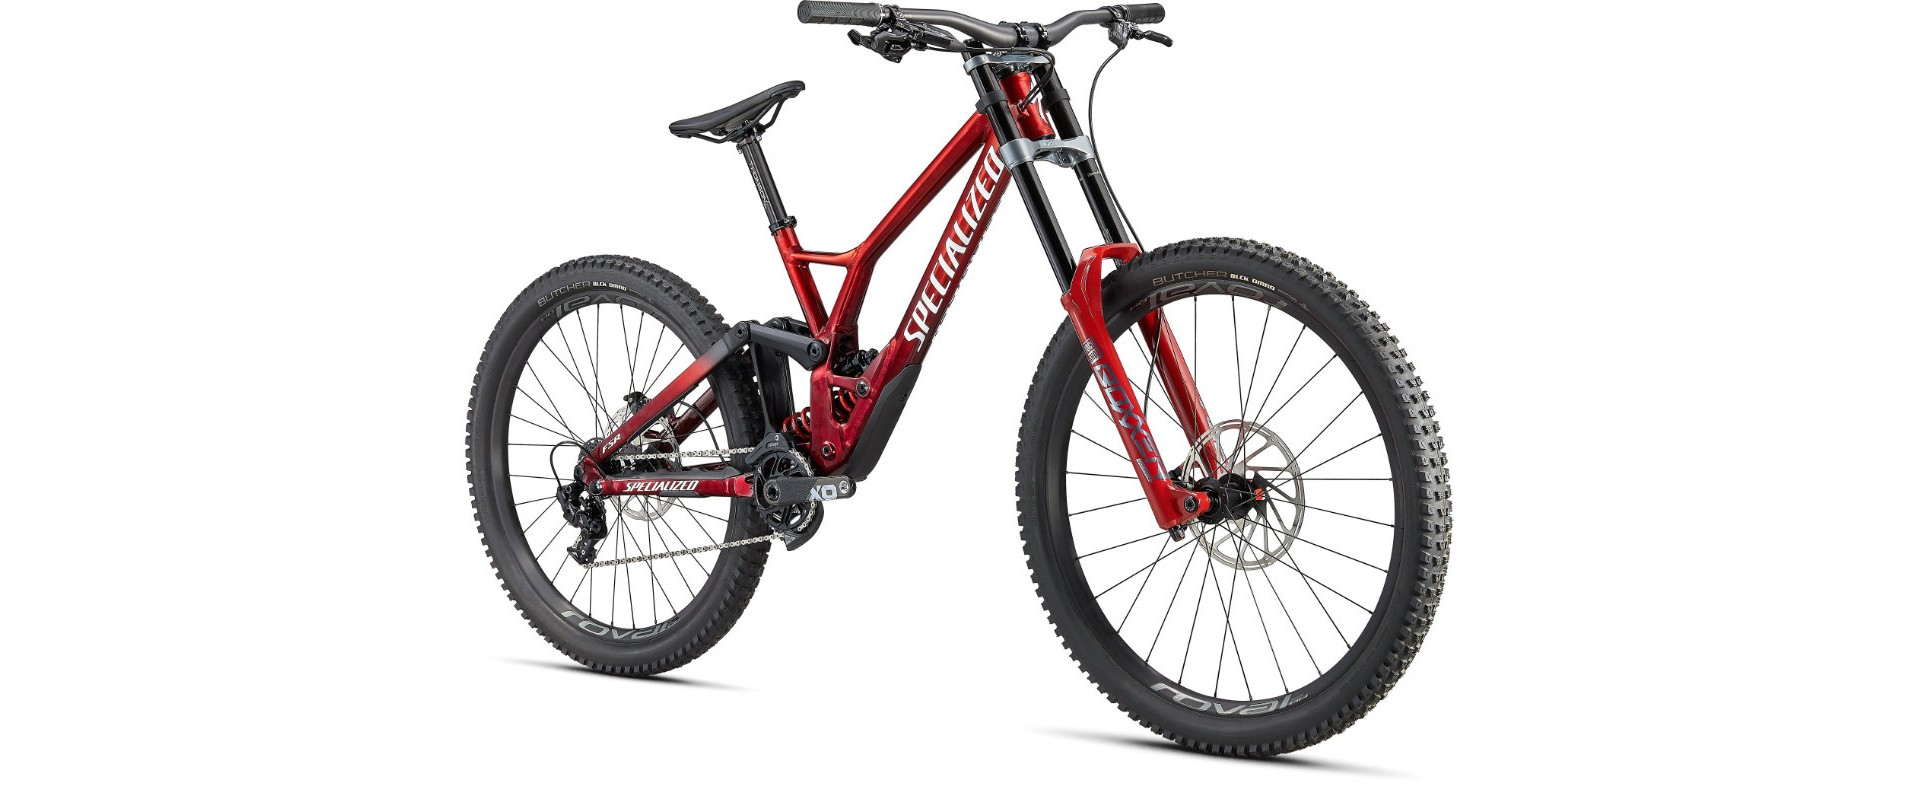 ♥ Bicicletas Downhill y Enduro ♥ Specialized Concept Store